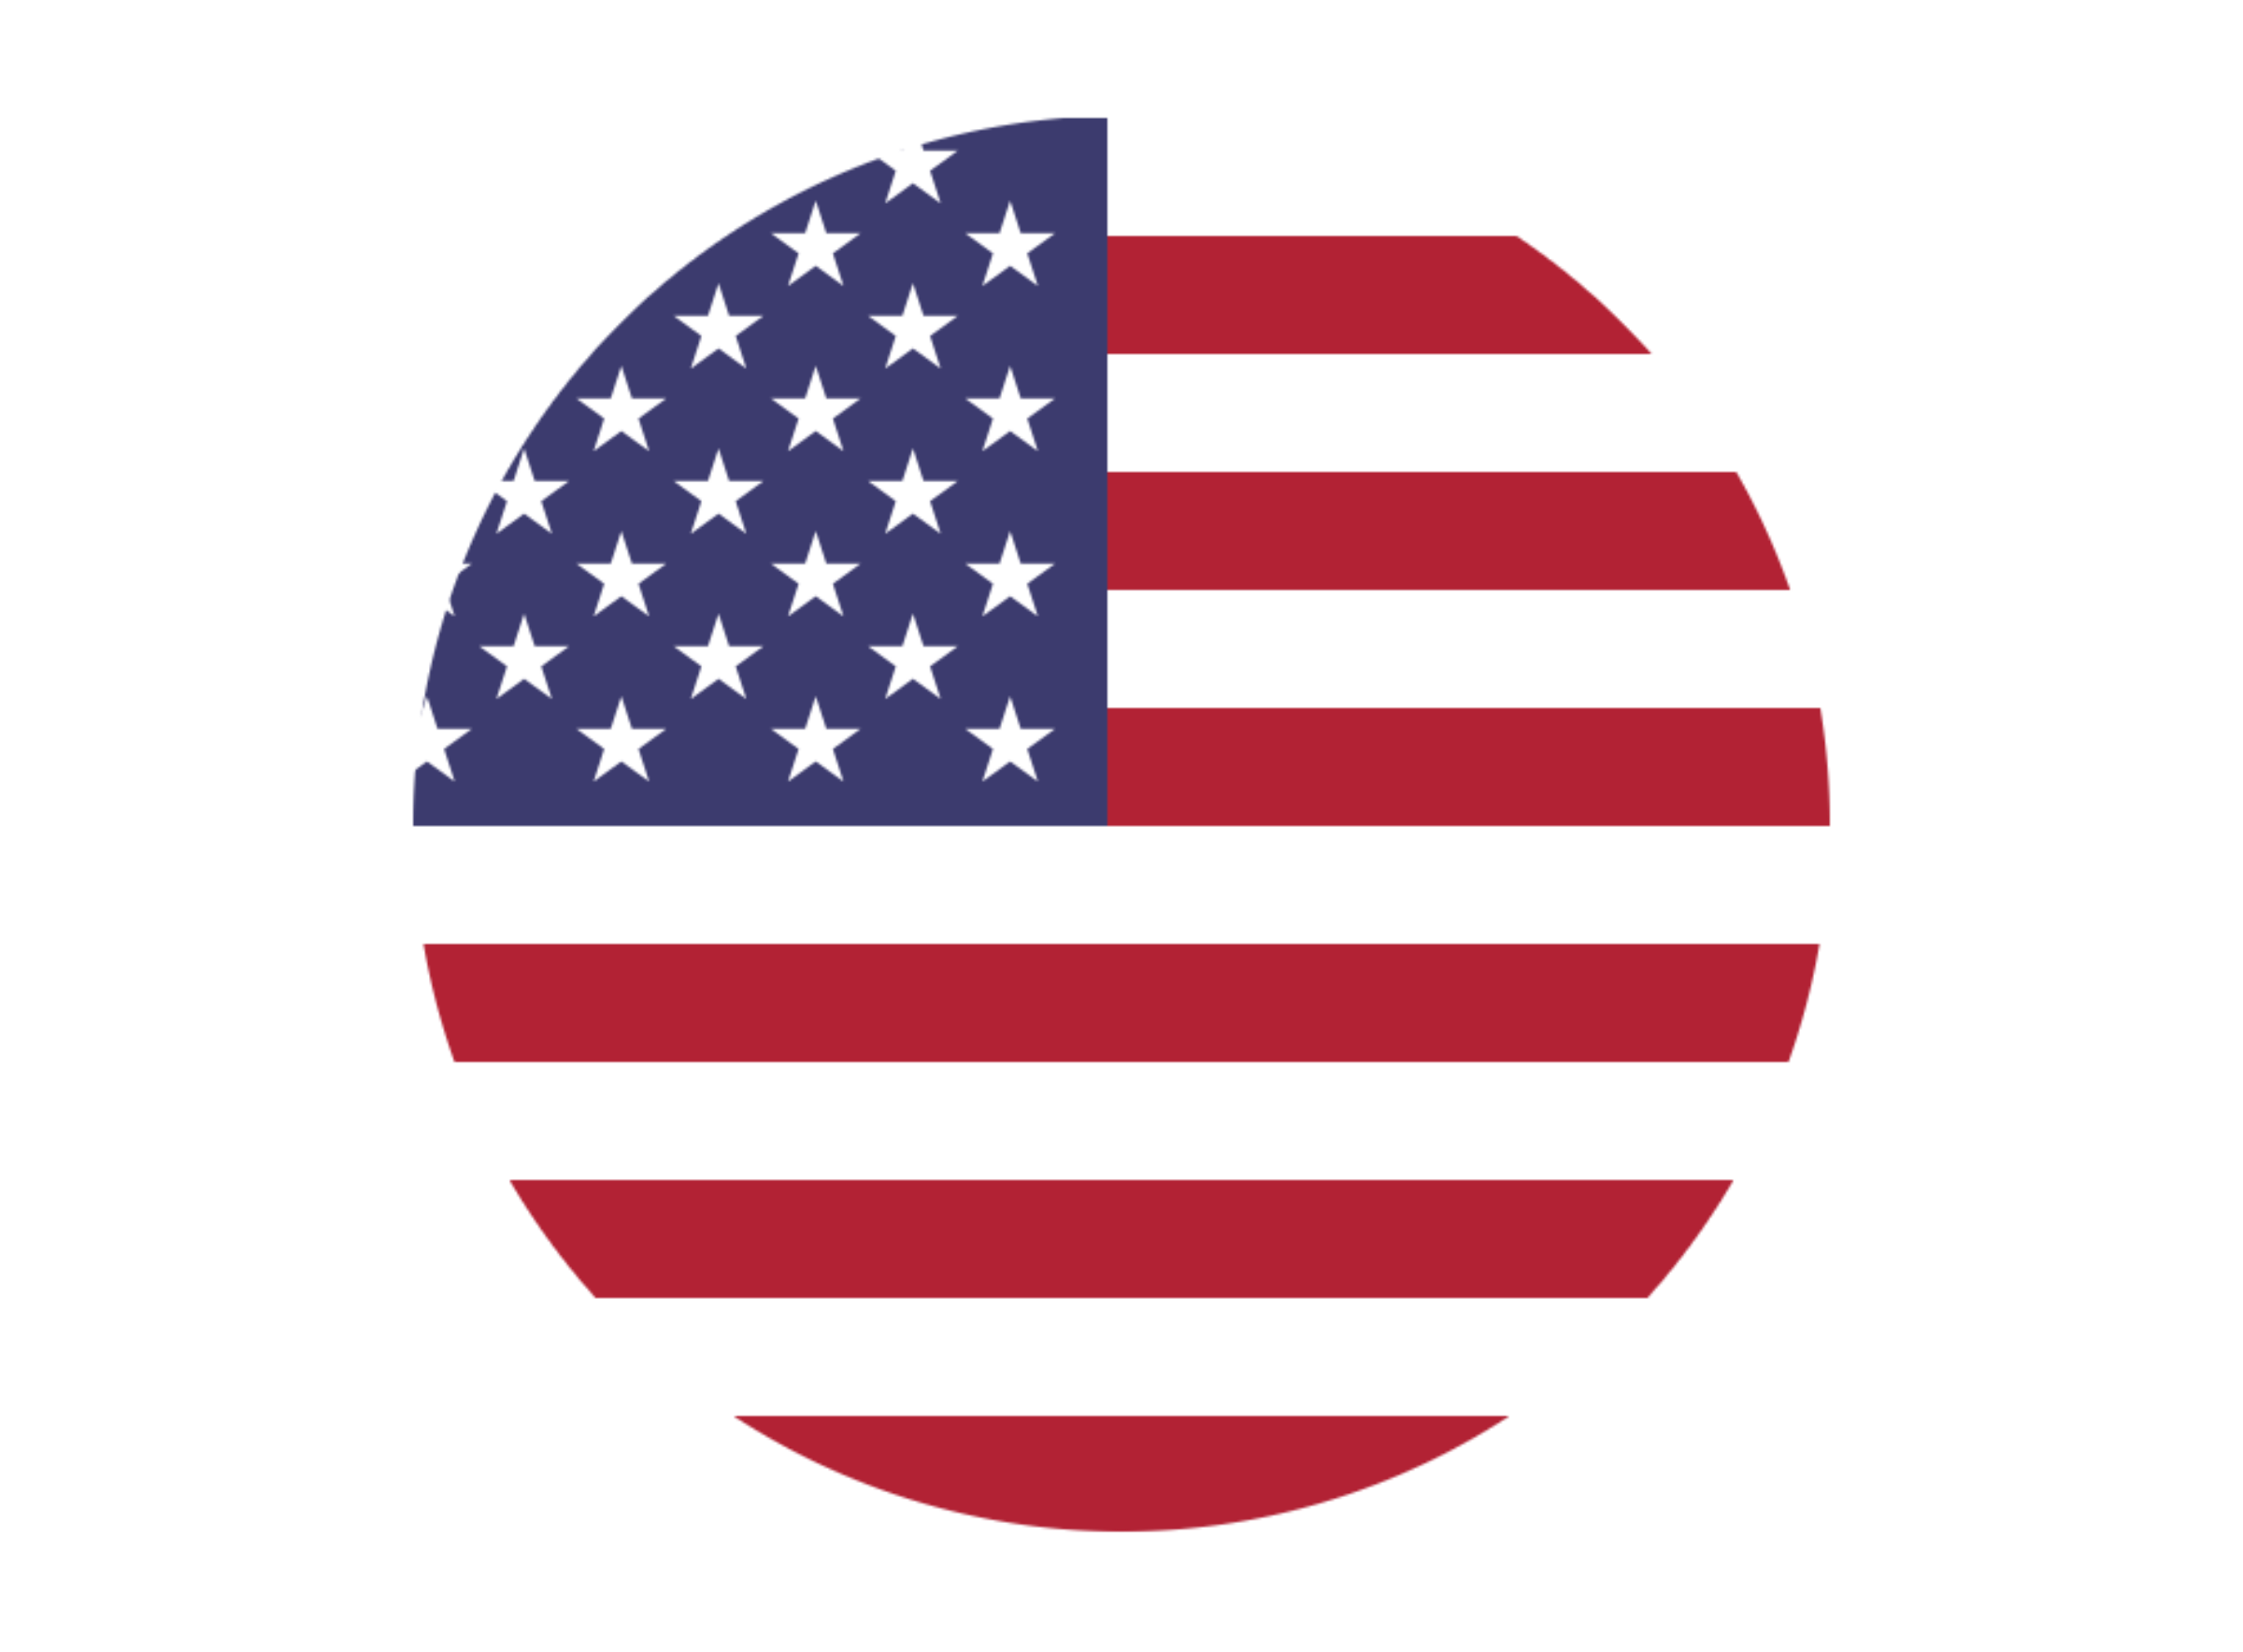 Flag USA by alcofex